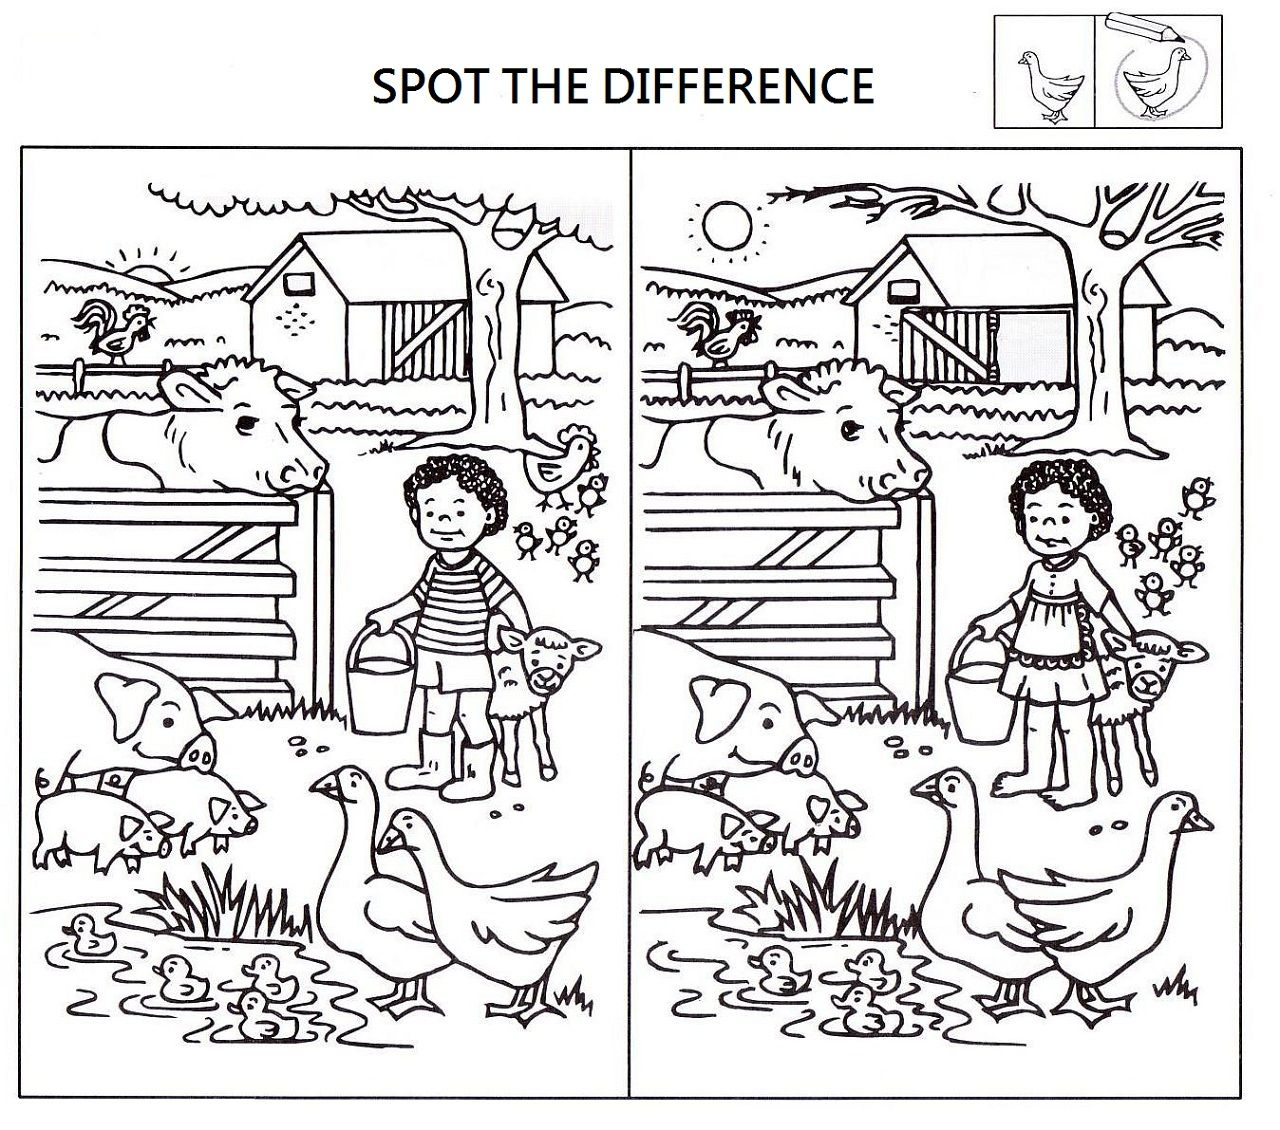 Spot The Difference Worksheets For Kids | Kids Worksheets Printable - Free Printable Spot The Difference For Kids